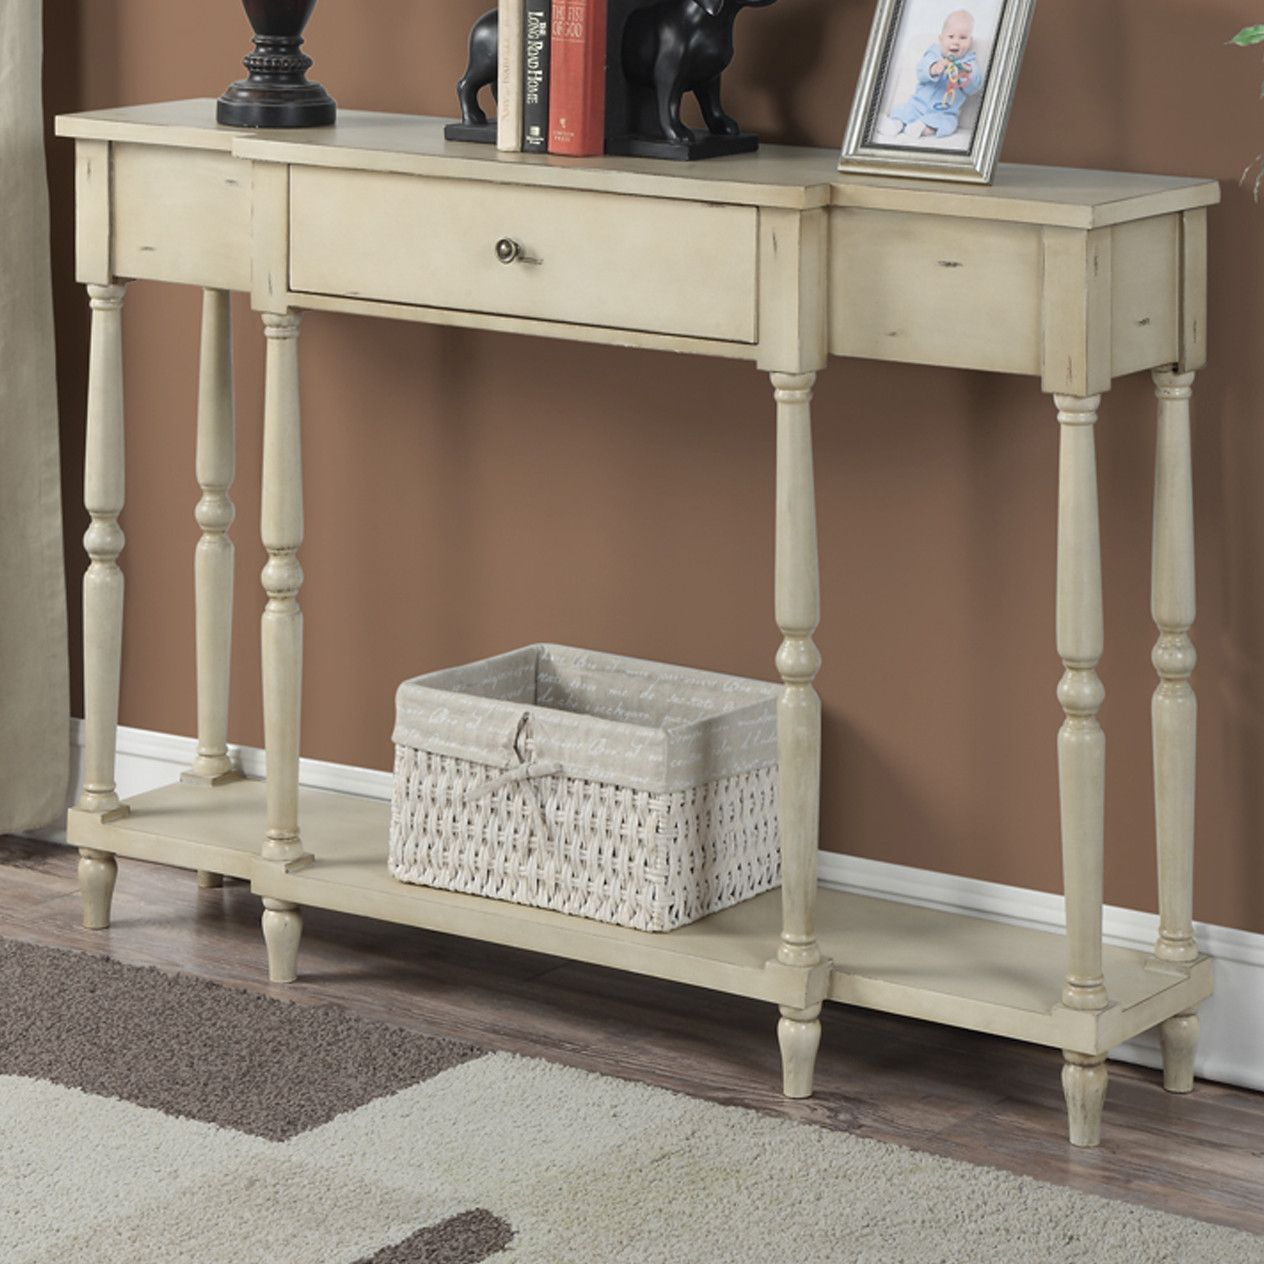 tables target small style console plans white decor black mirrored argos hygena metal ideas outdoor gold hafley hall owings table hallway hillside farmhouse darley winni accent